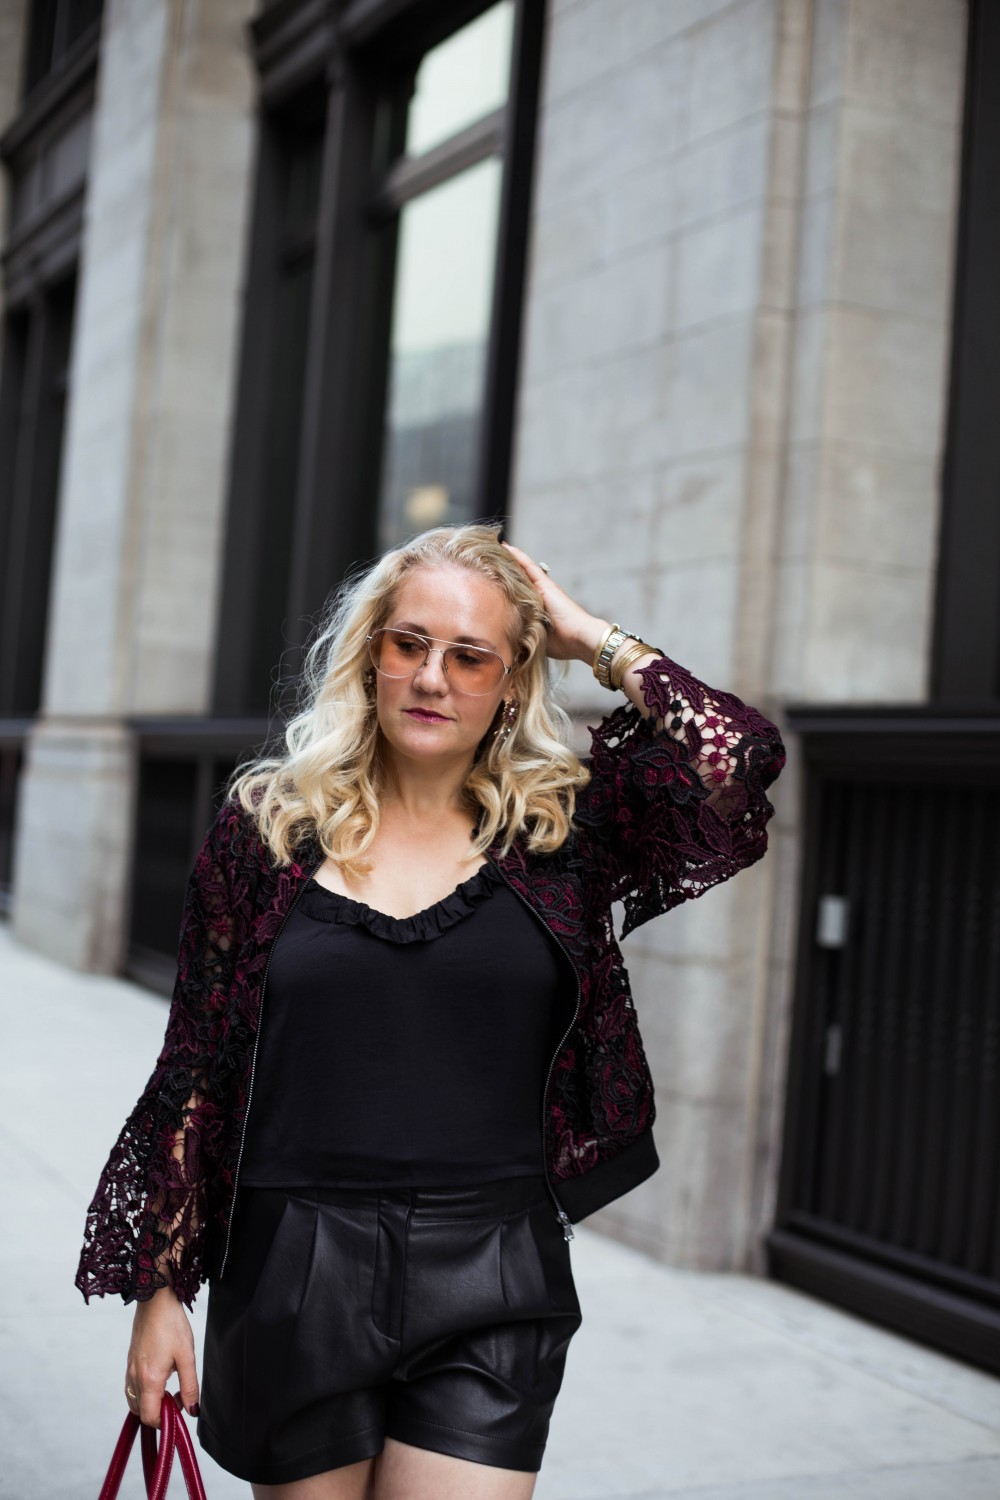 Lace Bomber Jacket-Kobi Halperin for Macy's-NYFW Street Style-NYFW SS18-Outfit Inspiration-Faux Leather Shorts-BCBG-Fall Fashion-Donald Pliner Booties-Geene Boots from Donald J Pliner-Have Need Want 11